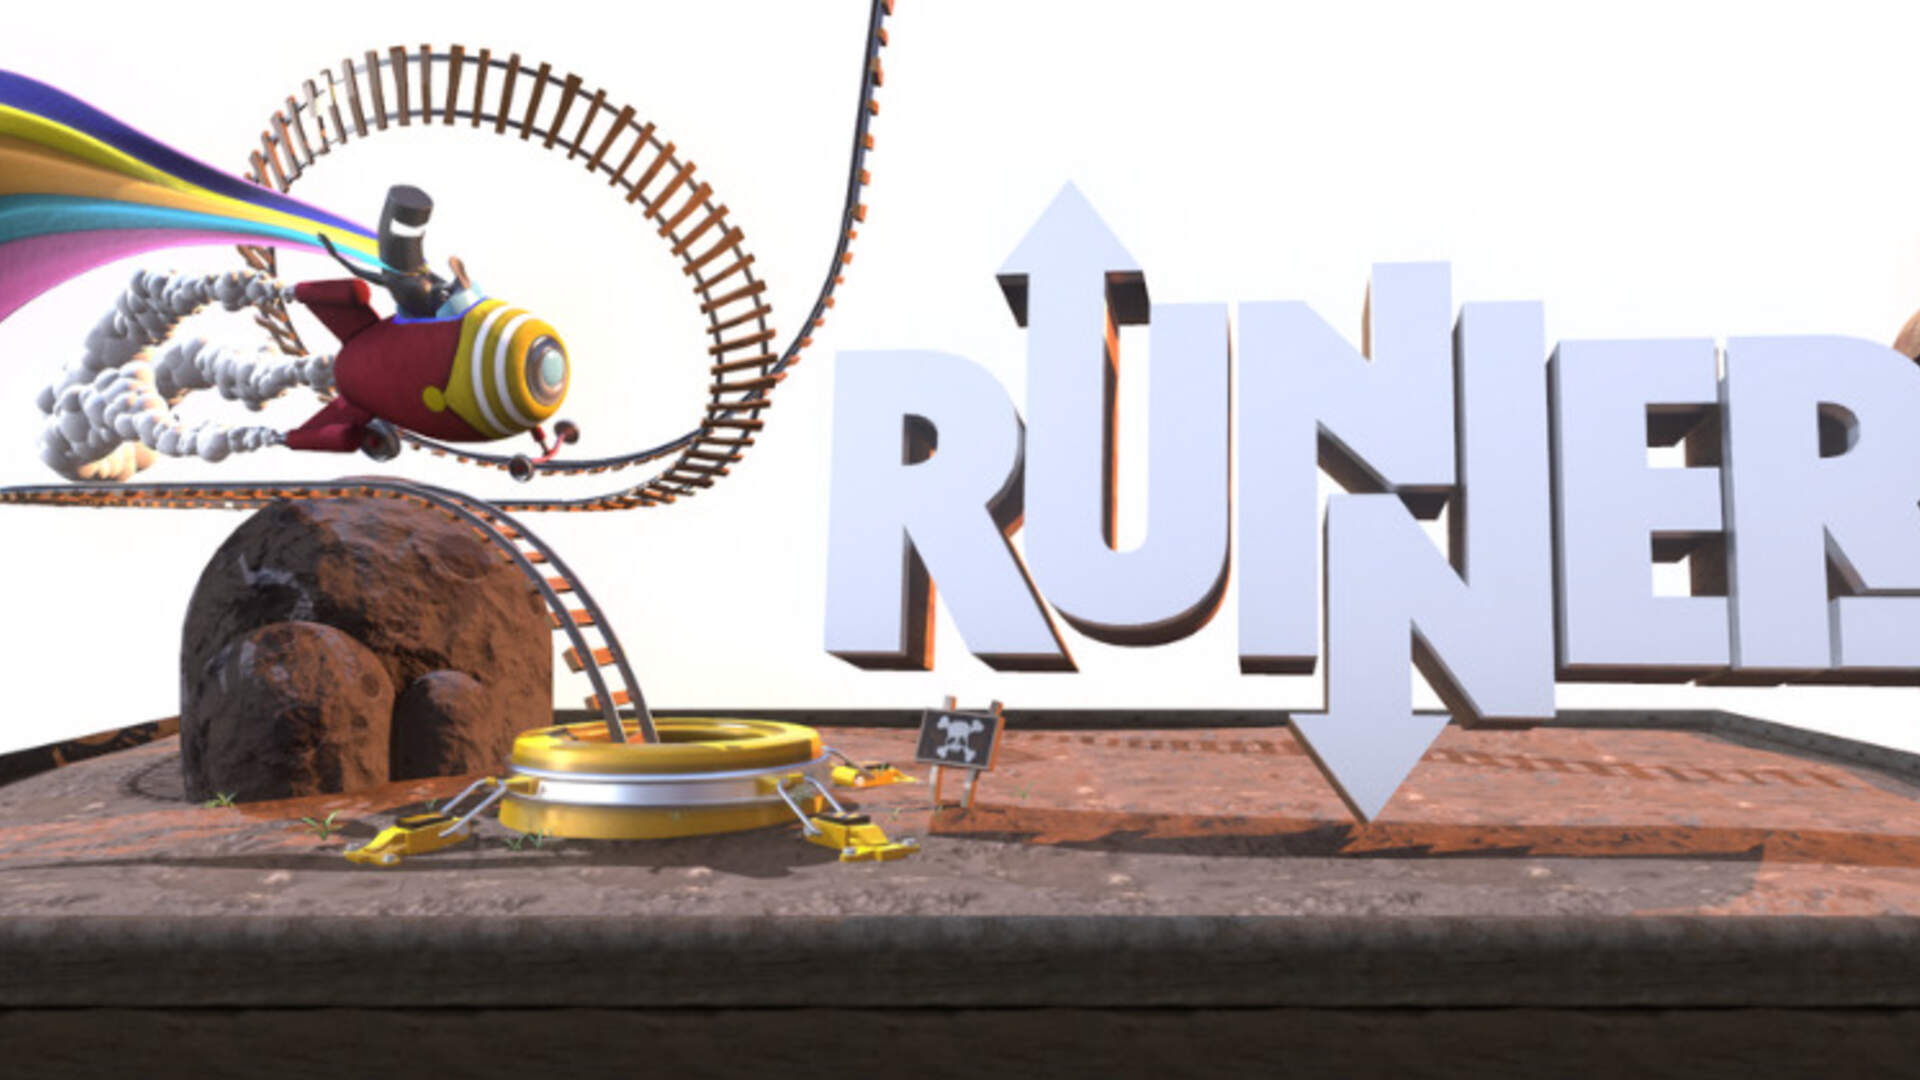 BIT.TRIP Continues With Runner 3